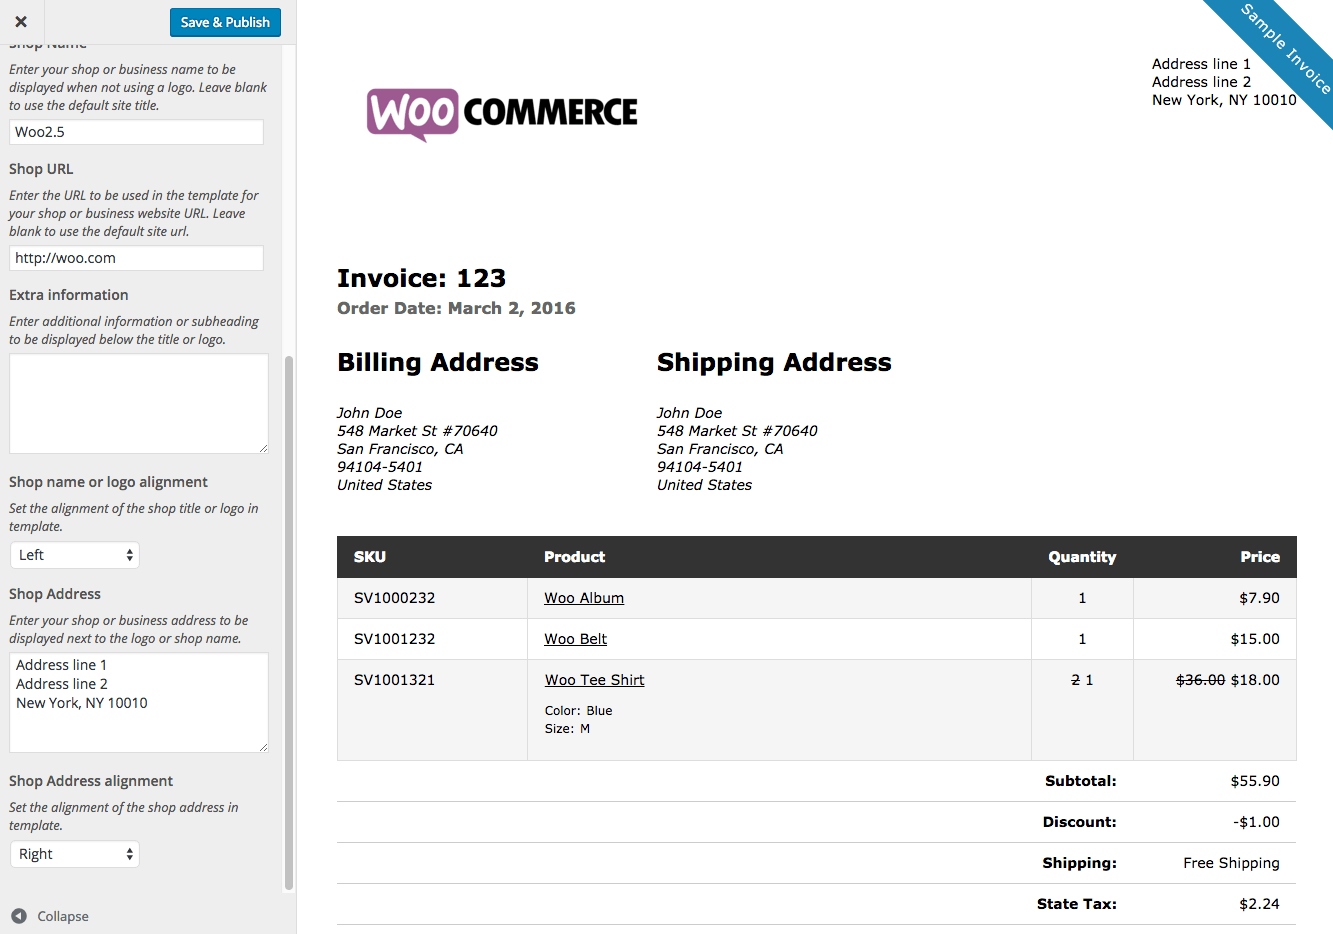 Angkajituus  Inspiring Woocommerce Print Invoices Amp Packing Lists  Woocommerce Docs With Lovely Woocommerce Print Invoices  Packing Lists Customizer With Amazing Confirming The Receipt Of An Email Also Receipting System In Addition Neat Receipts Software For Pc And Hotel Receipt Format As Well As Sbi Life Insurance Premium Receipt Additionally General Receipt Form From Docswoocommercecom With Angkajituus  Lovely Woocommerce Print Invoices Amp Packing Lists  Woocommerce Docs With Amazing Woocommerce Print Invoices  Packing Lists Customizer And Inspiring Confirming The Receipt Of An Email Also Receipting System In Addition Neat Receipts Software For Pc From Docswoocommercecom